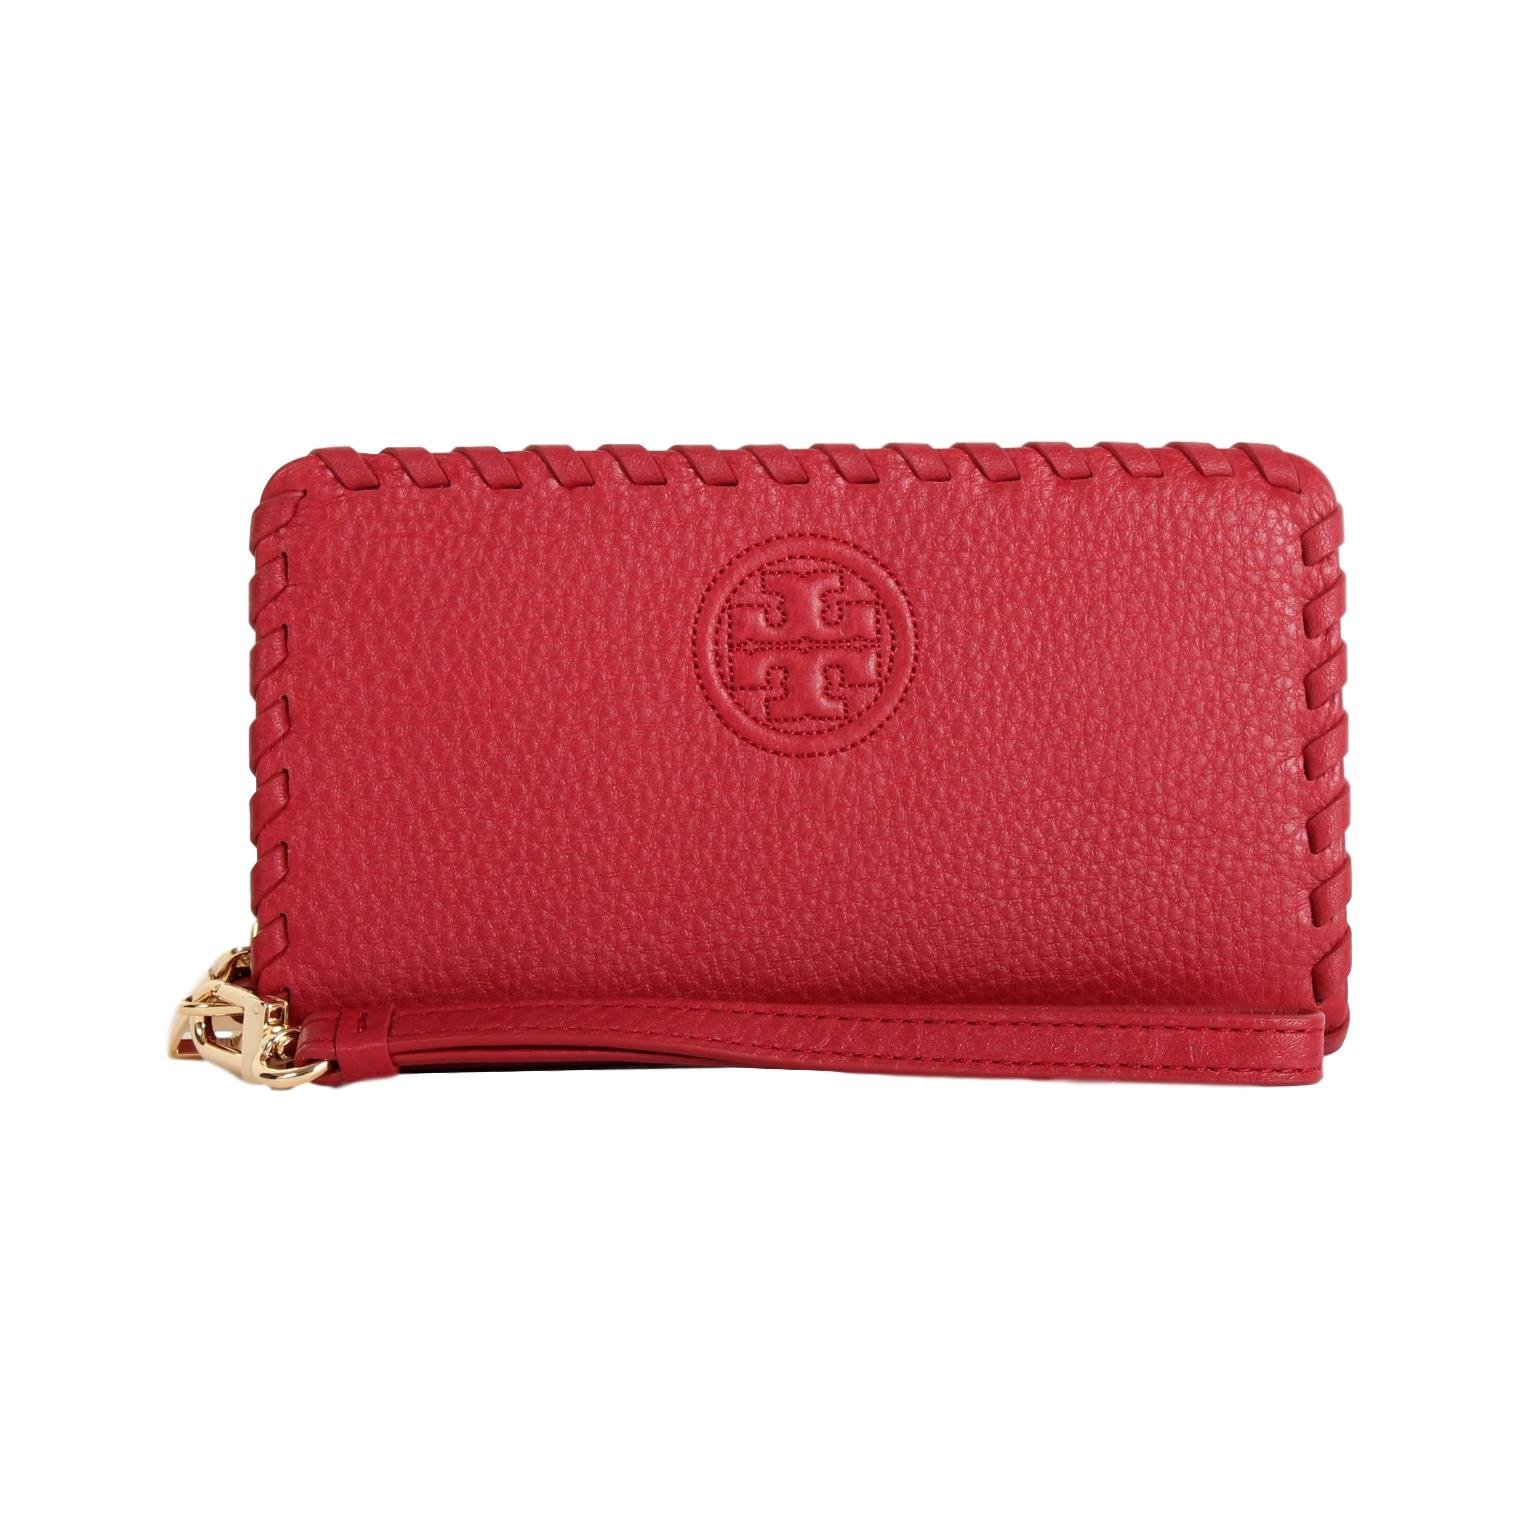 Tory Burch Marion Smartphone Leather Wristlet Wallet Style NO. 40855 (Redstone) by Tory Burch